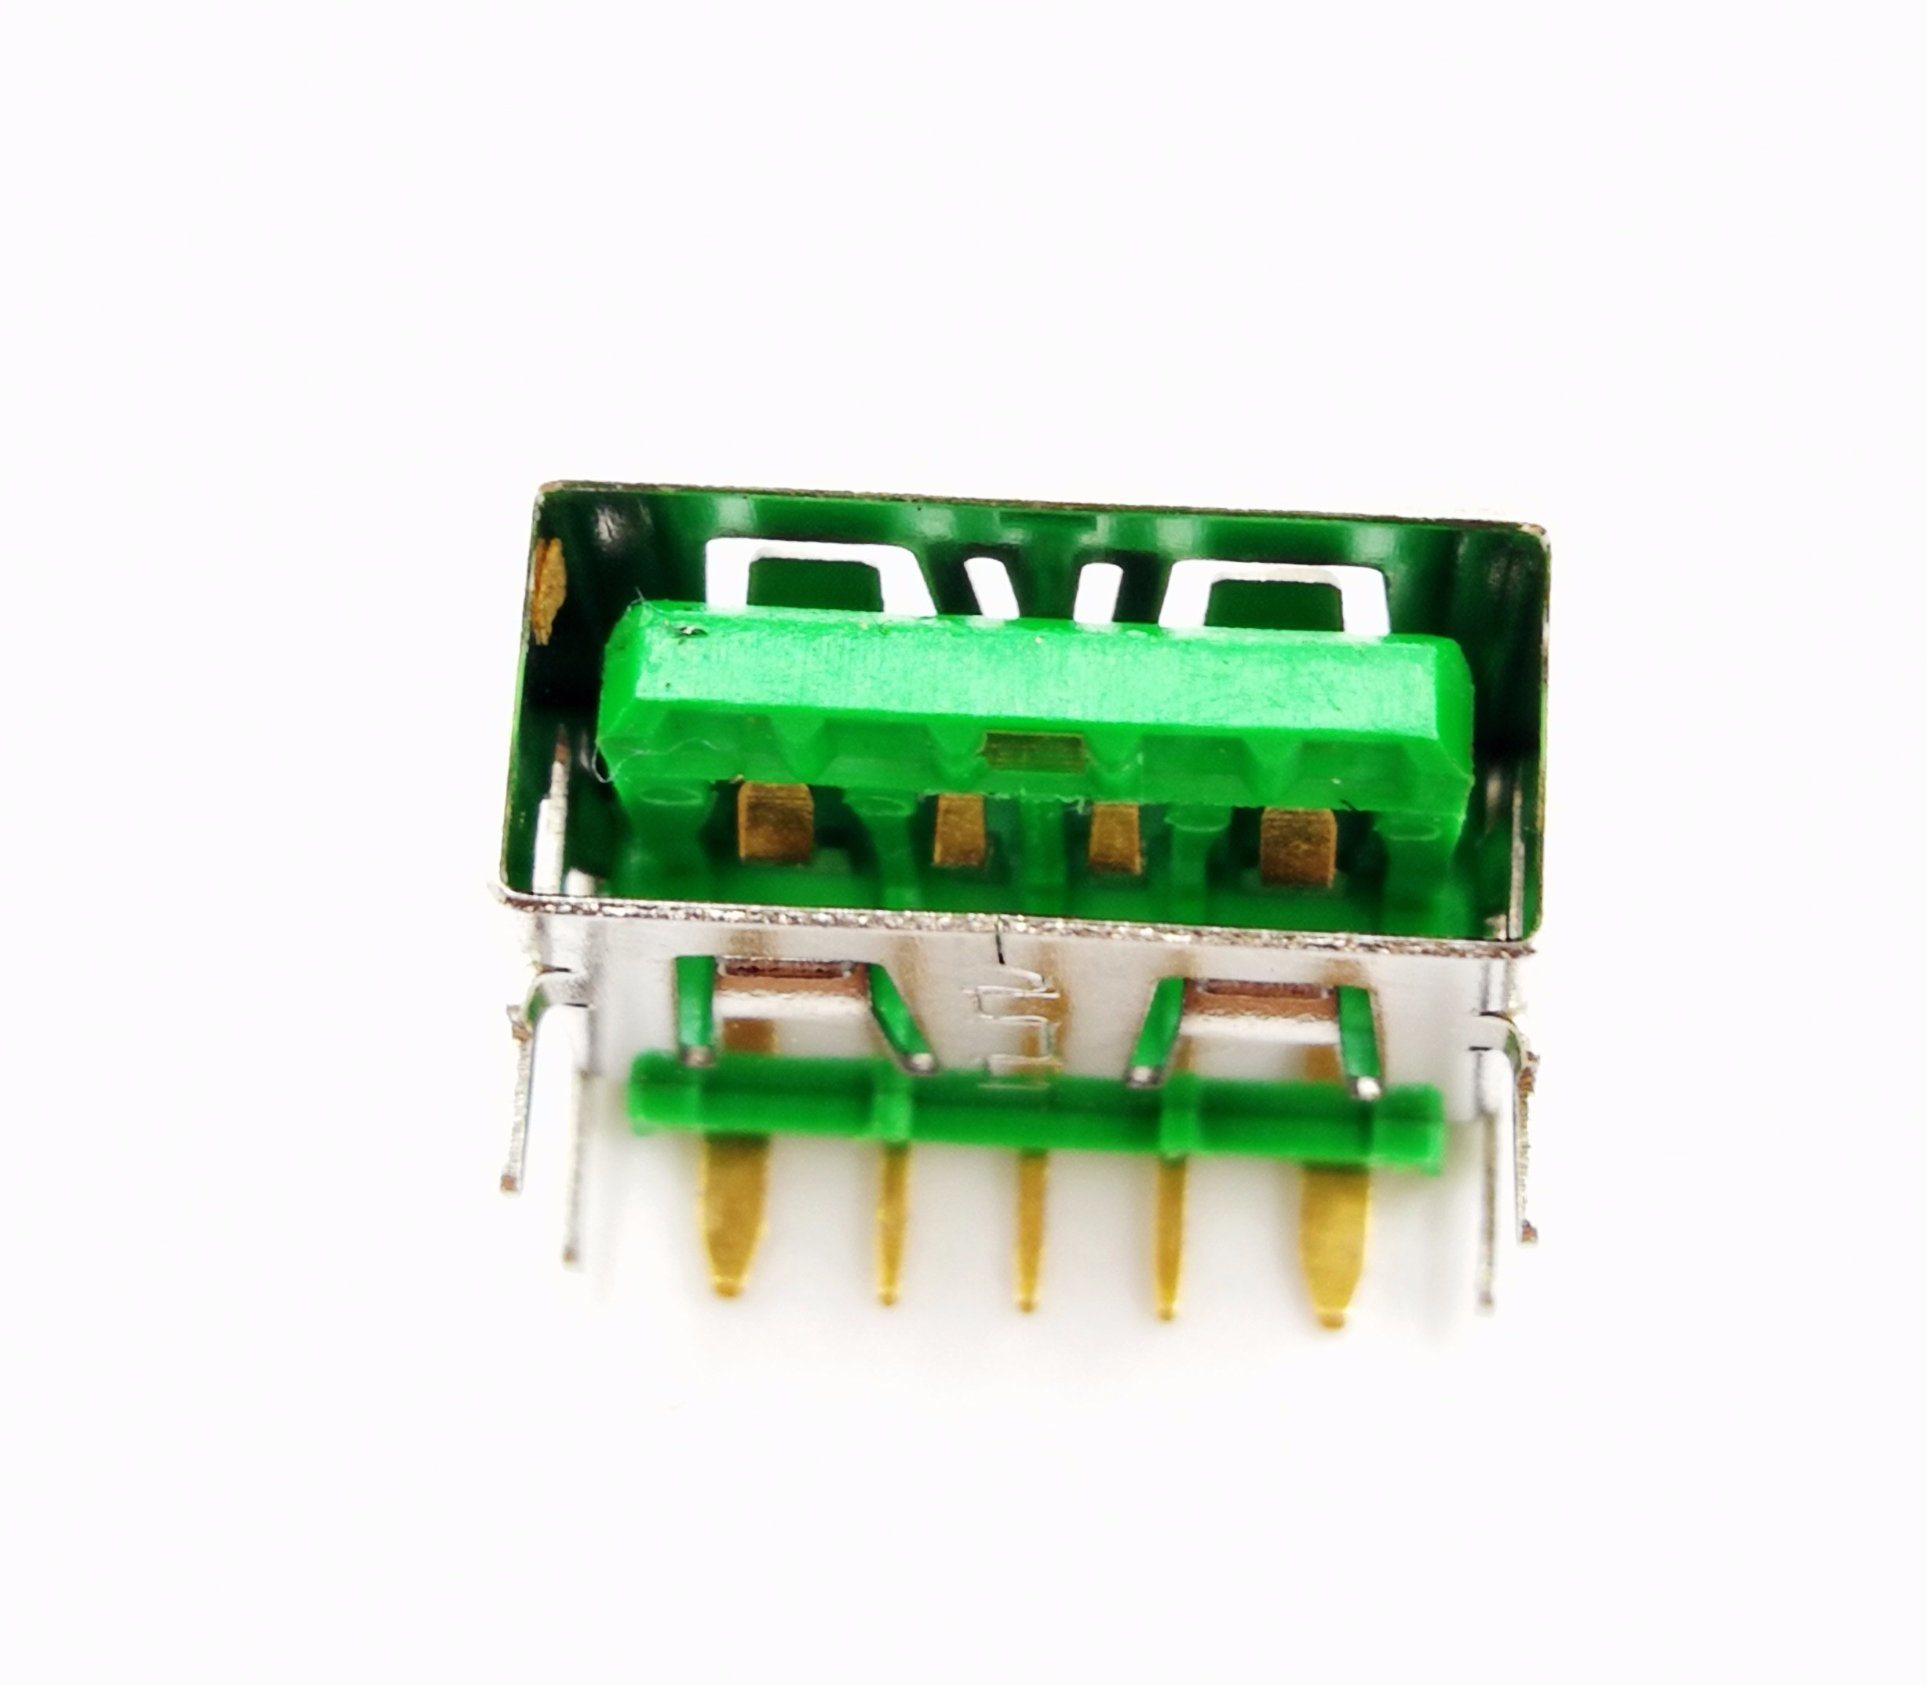 5 Pin Female Connector for Power Adapter, Power Bank. Support Quick Charge, Rated Current: 8A